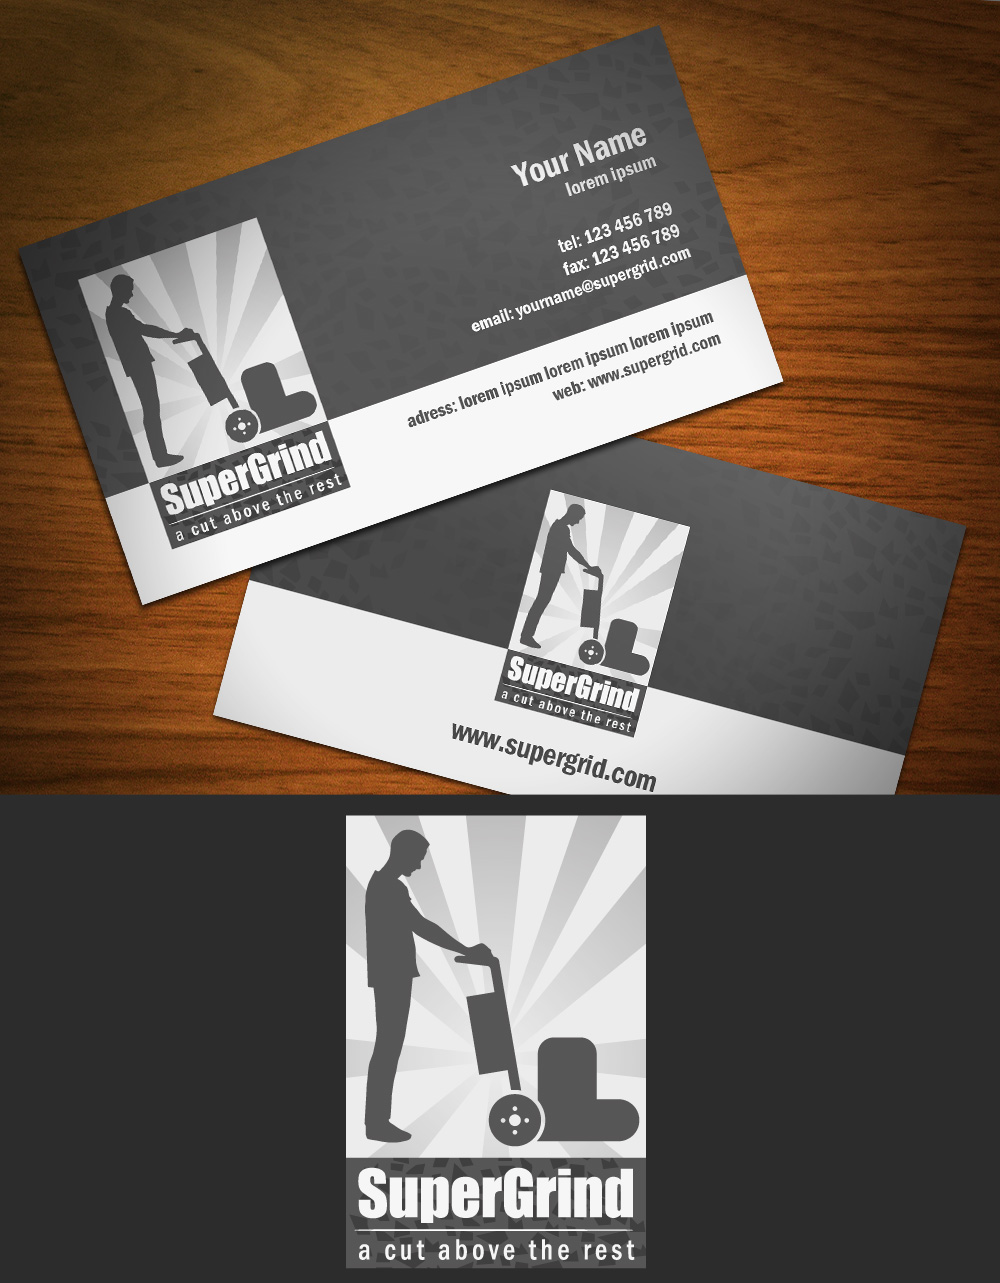 Concrete Grinding and Polishing company business card with